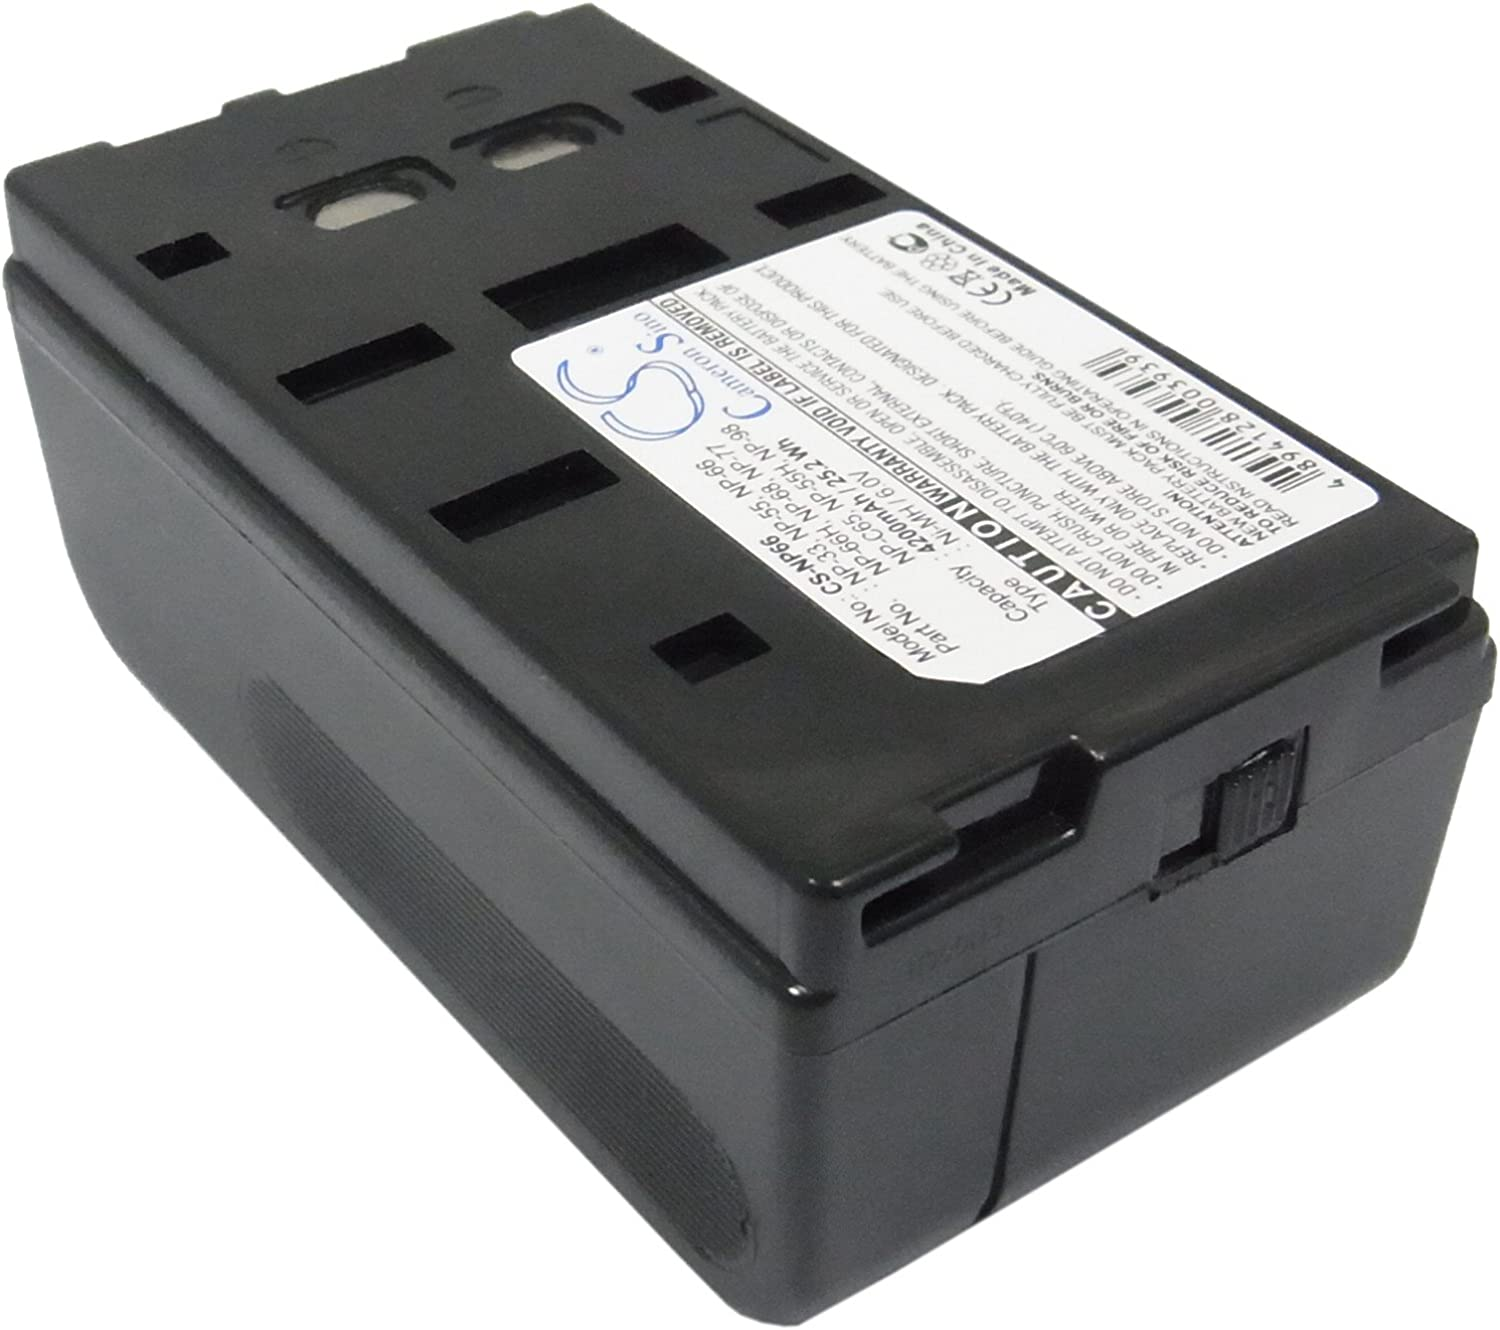 Cameron Sino Rechargeble Battery 4200mAh Sony for CCD-F500E Super sale period limited San Jose Mall